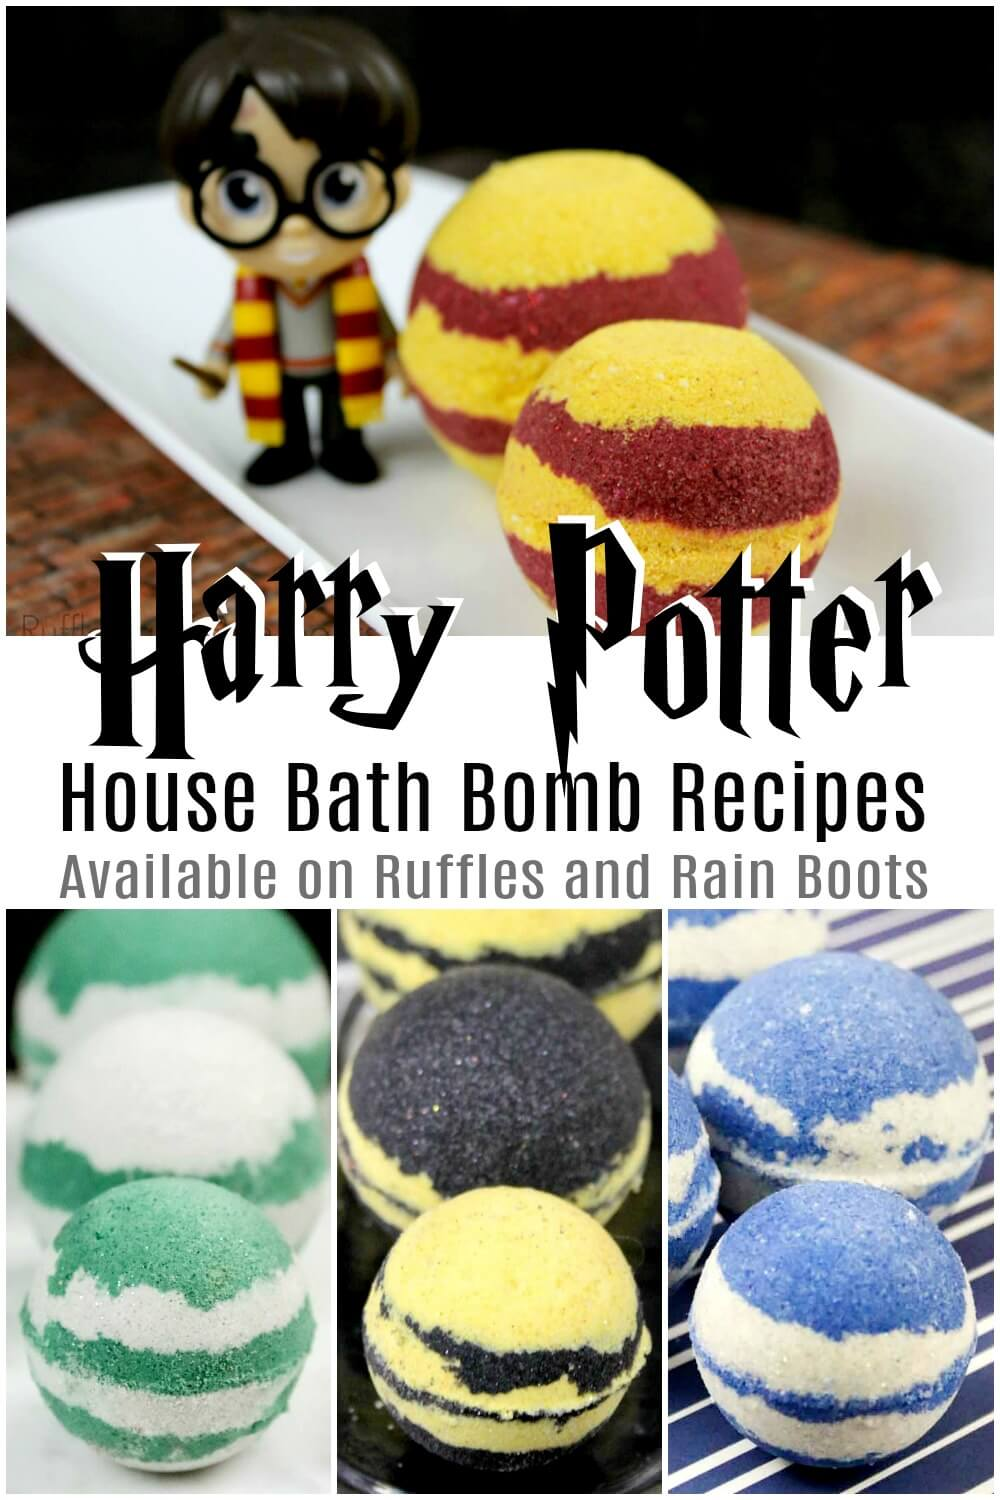 harry potter bath bombs gift idea photo collage with thext which reads harry potter house bath bomb recipes